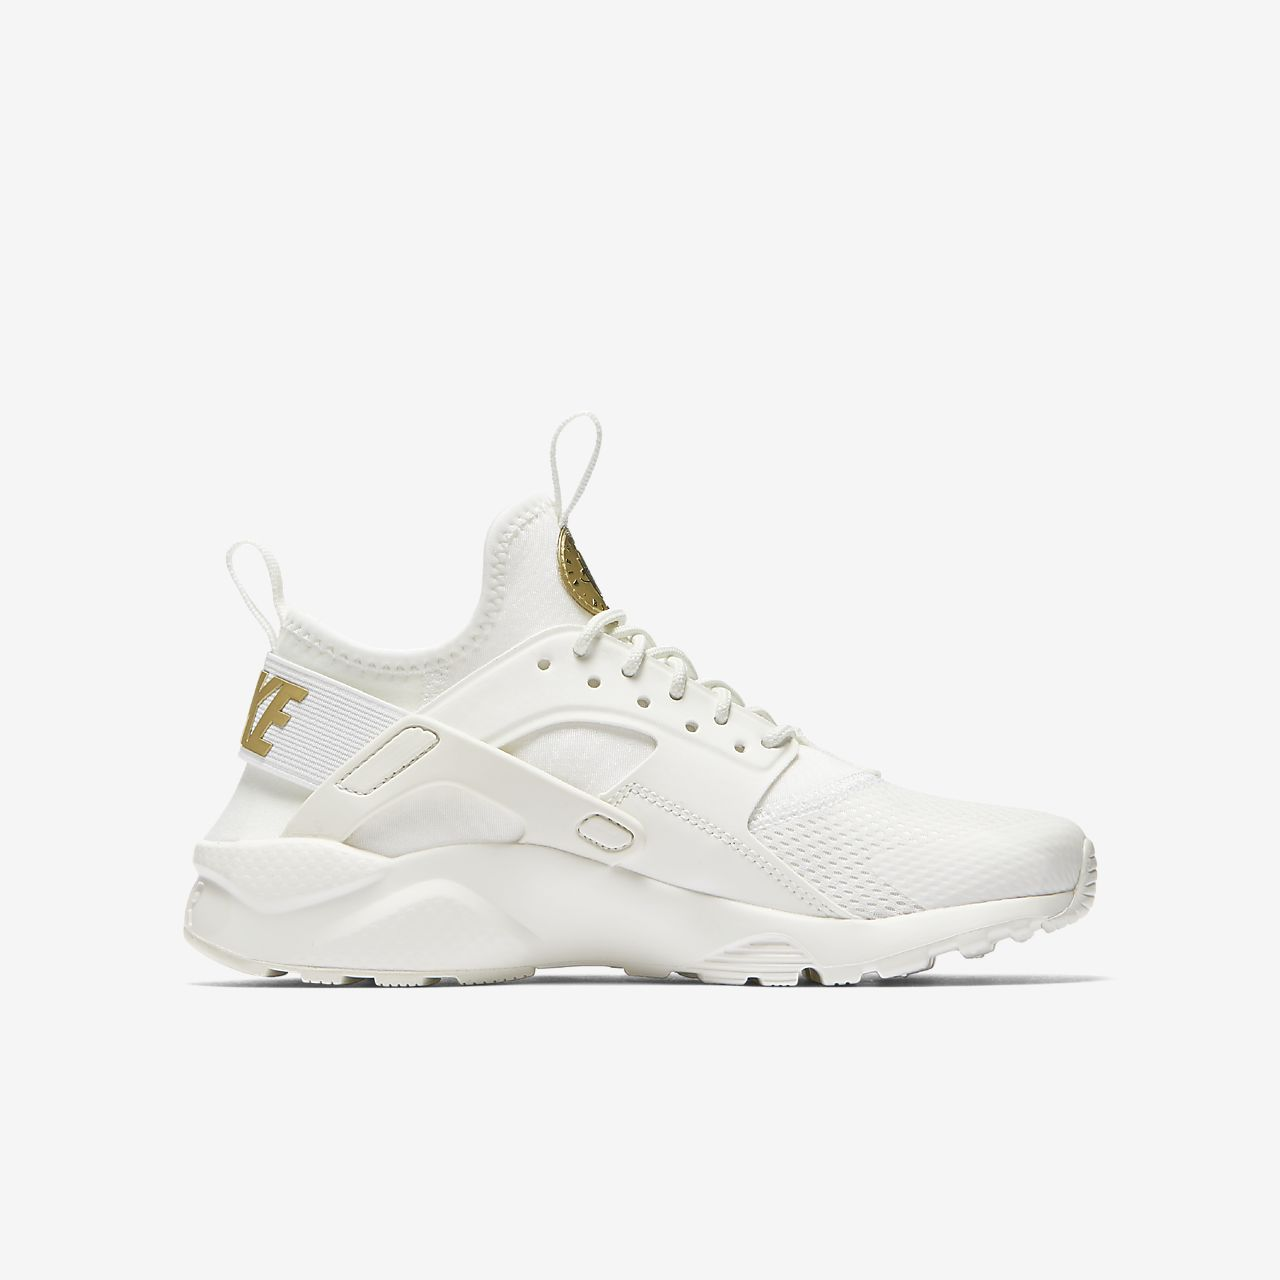 Nike Air Huarache Ultra White Misura 40